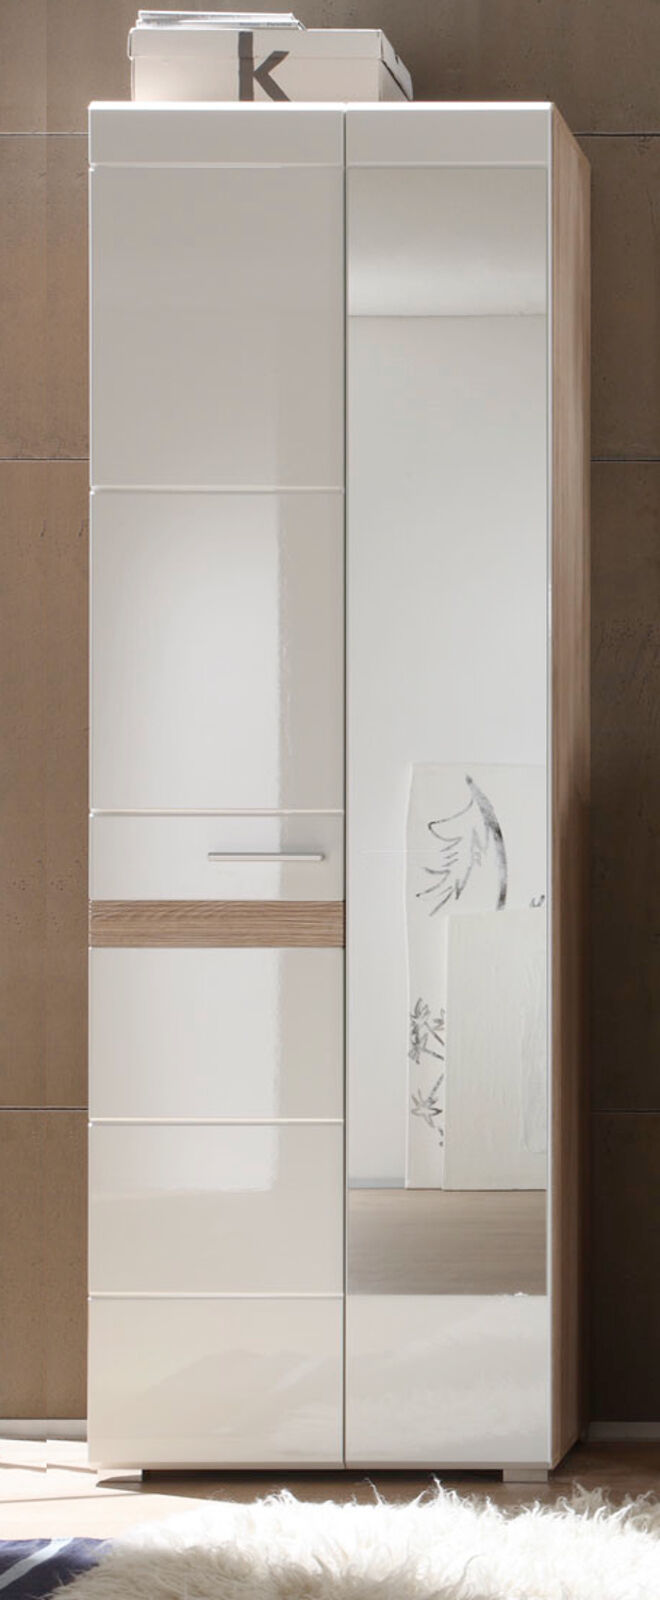 garderobenschrank flurgarderobe schrank wei hochglanz eiche mit spiegel setone eur 219 99. Black Bedroom Furniture Sets. Home Design Ideas